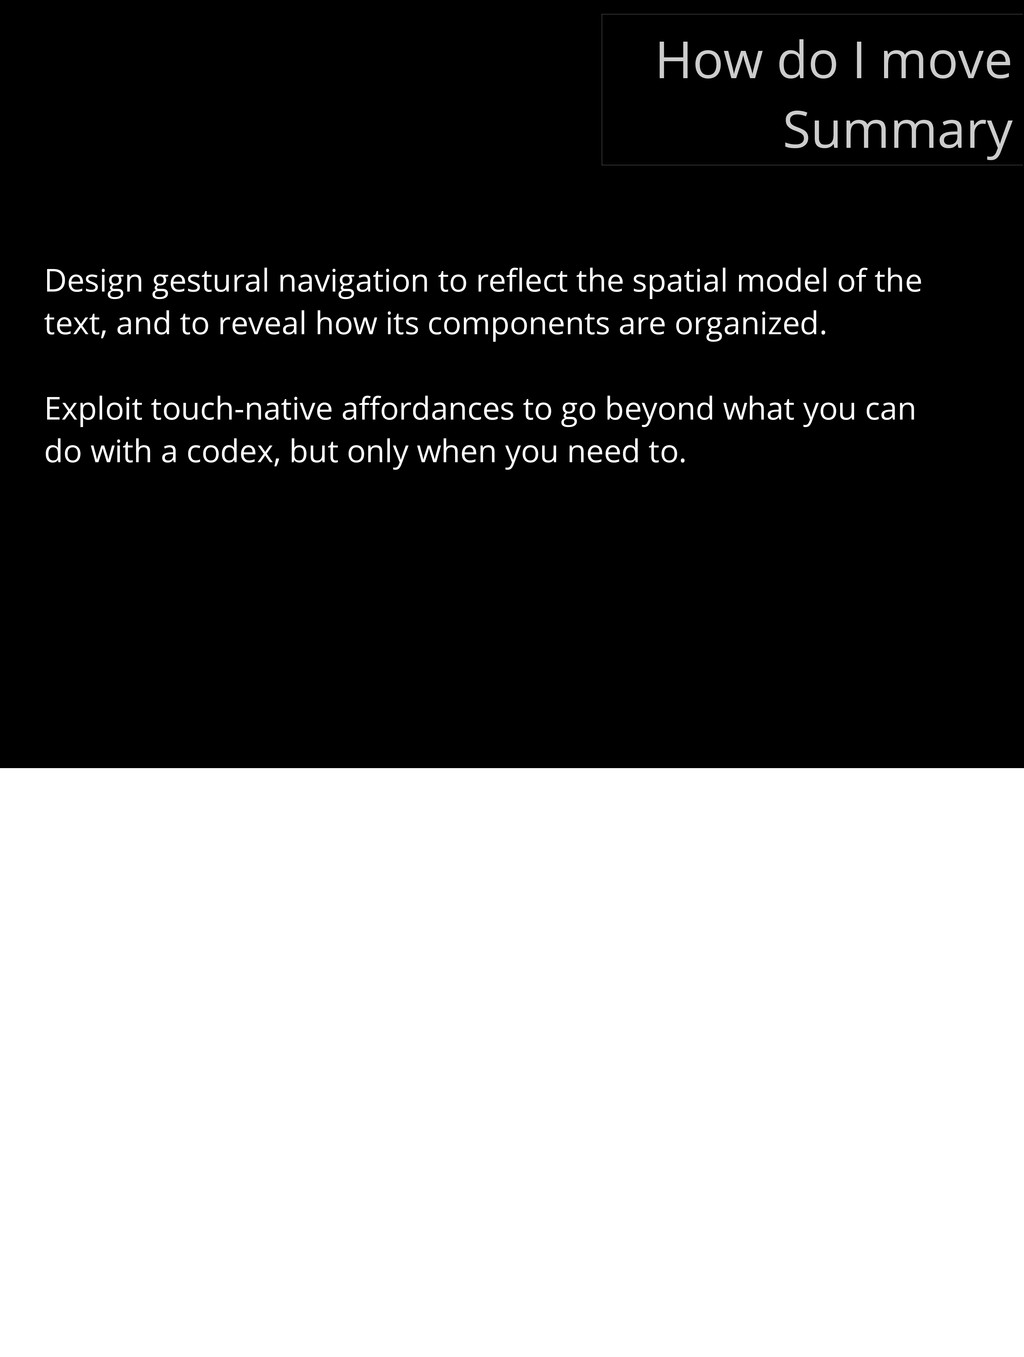 Design gestural navigation to reflect the spatia...